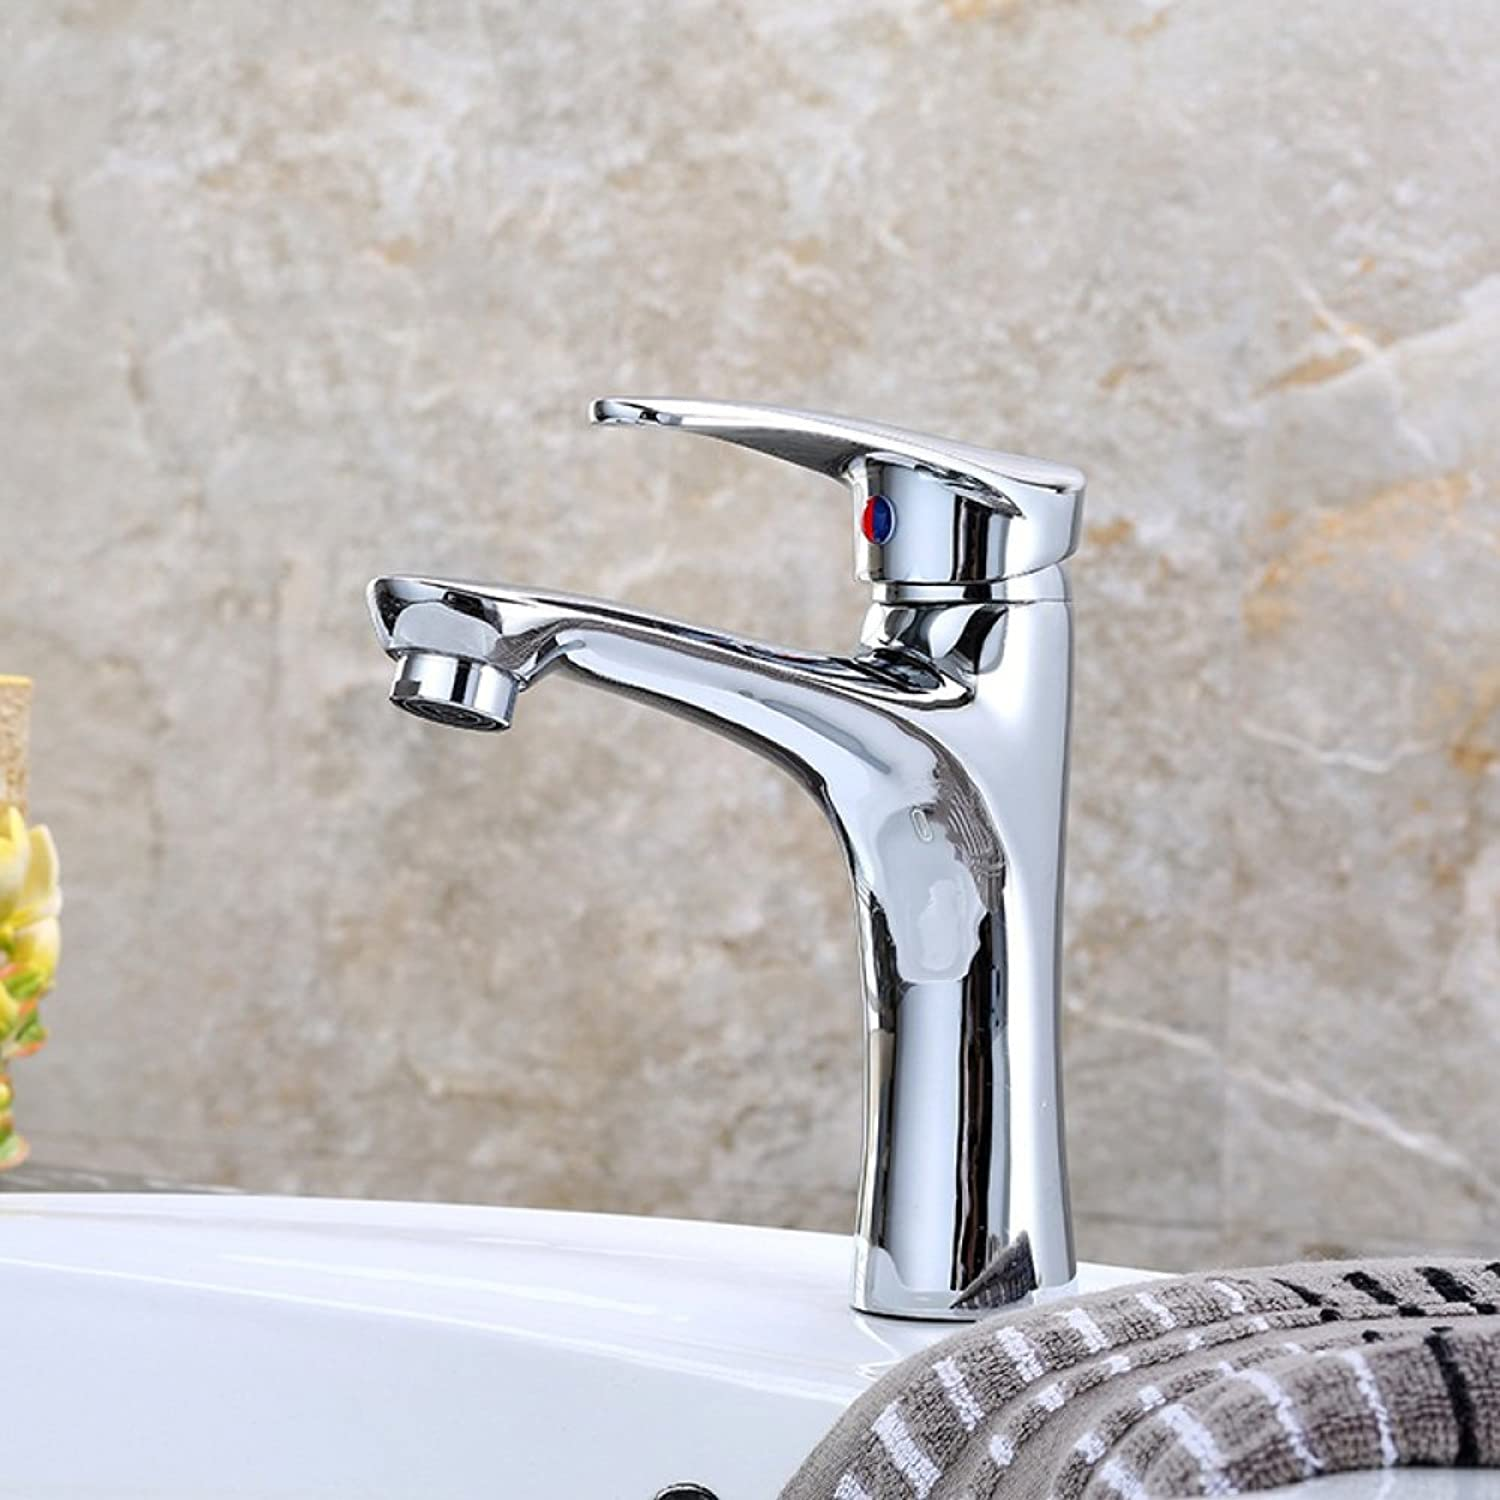 FW Furniture Ware FW All copper basin faucet hot and cold single hole bathroom bathroom washbasin faucet sink faucet